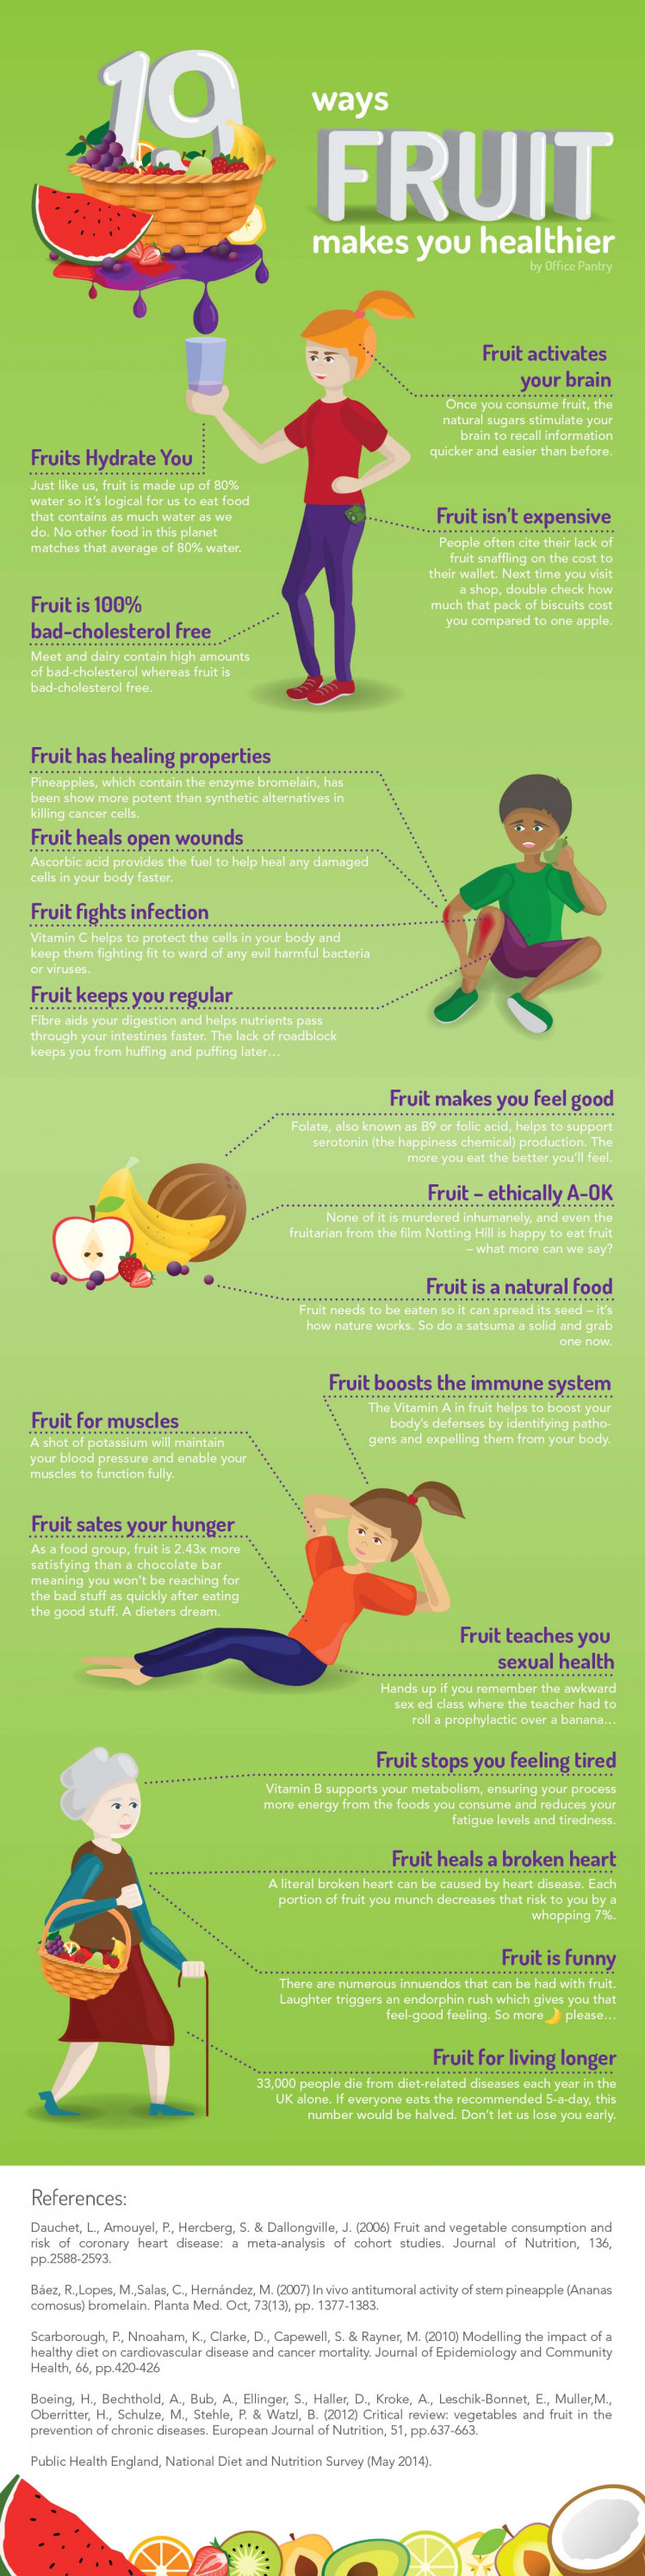 The 19 Ways Fruit Can Make You A Healthier Person; How To Eat A Mango (4 Ways)